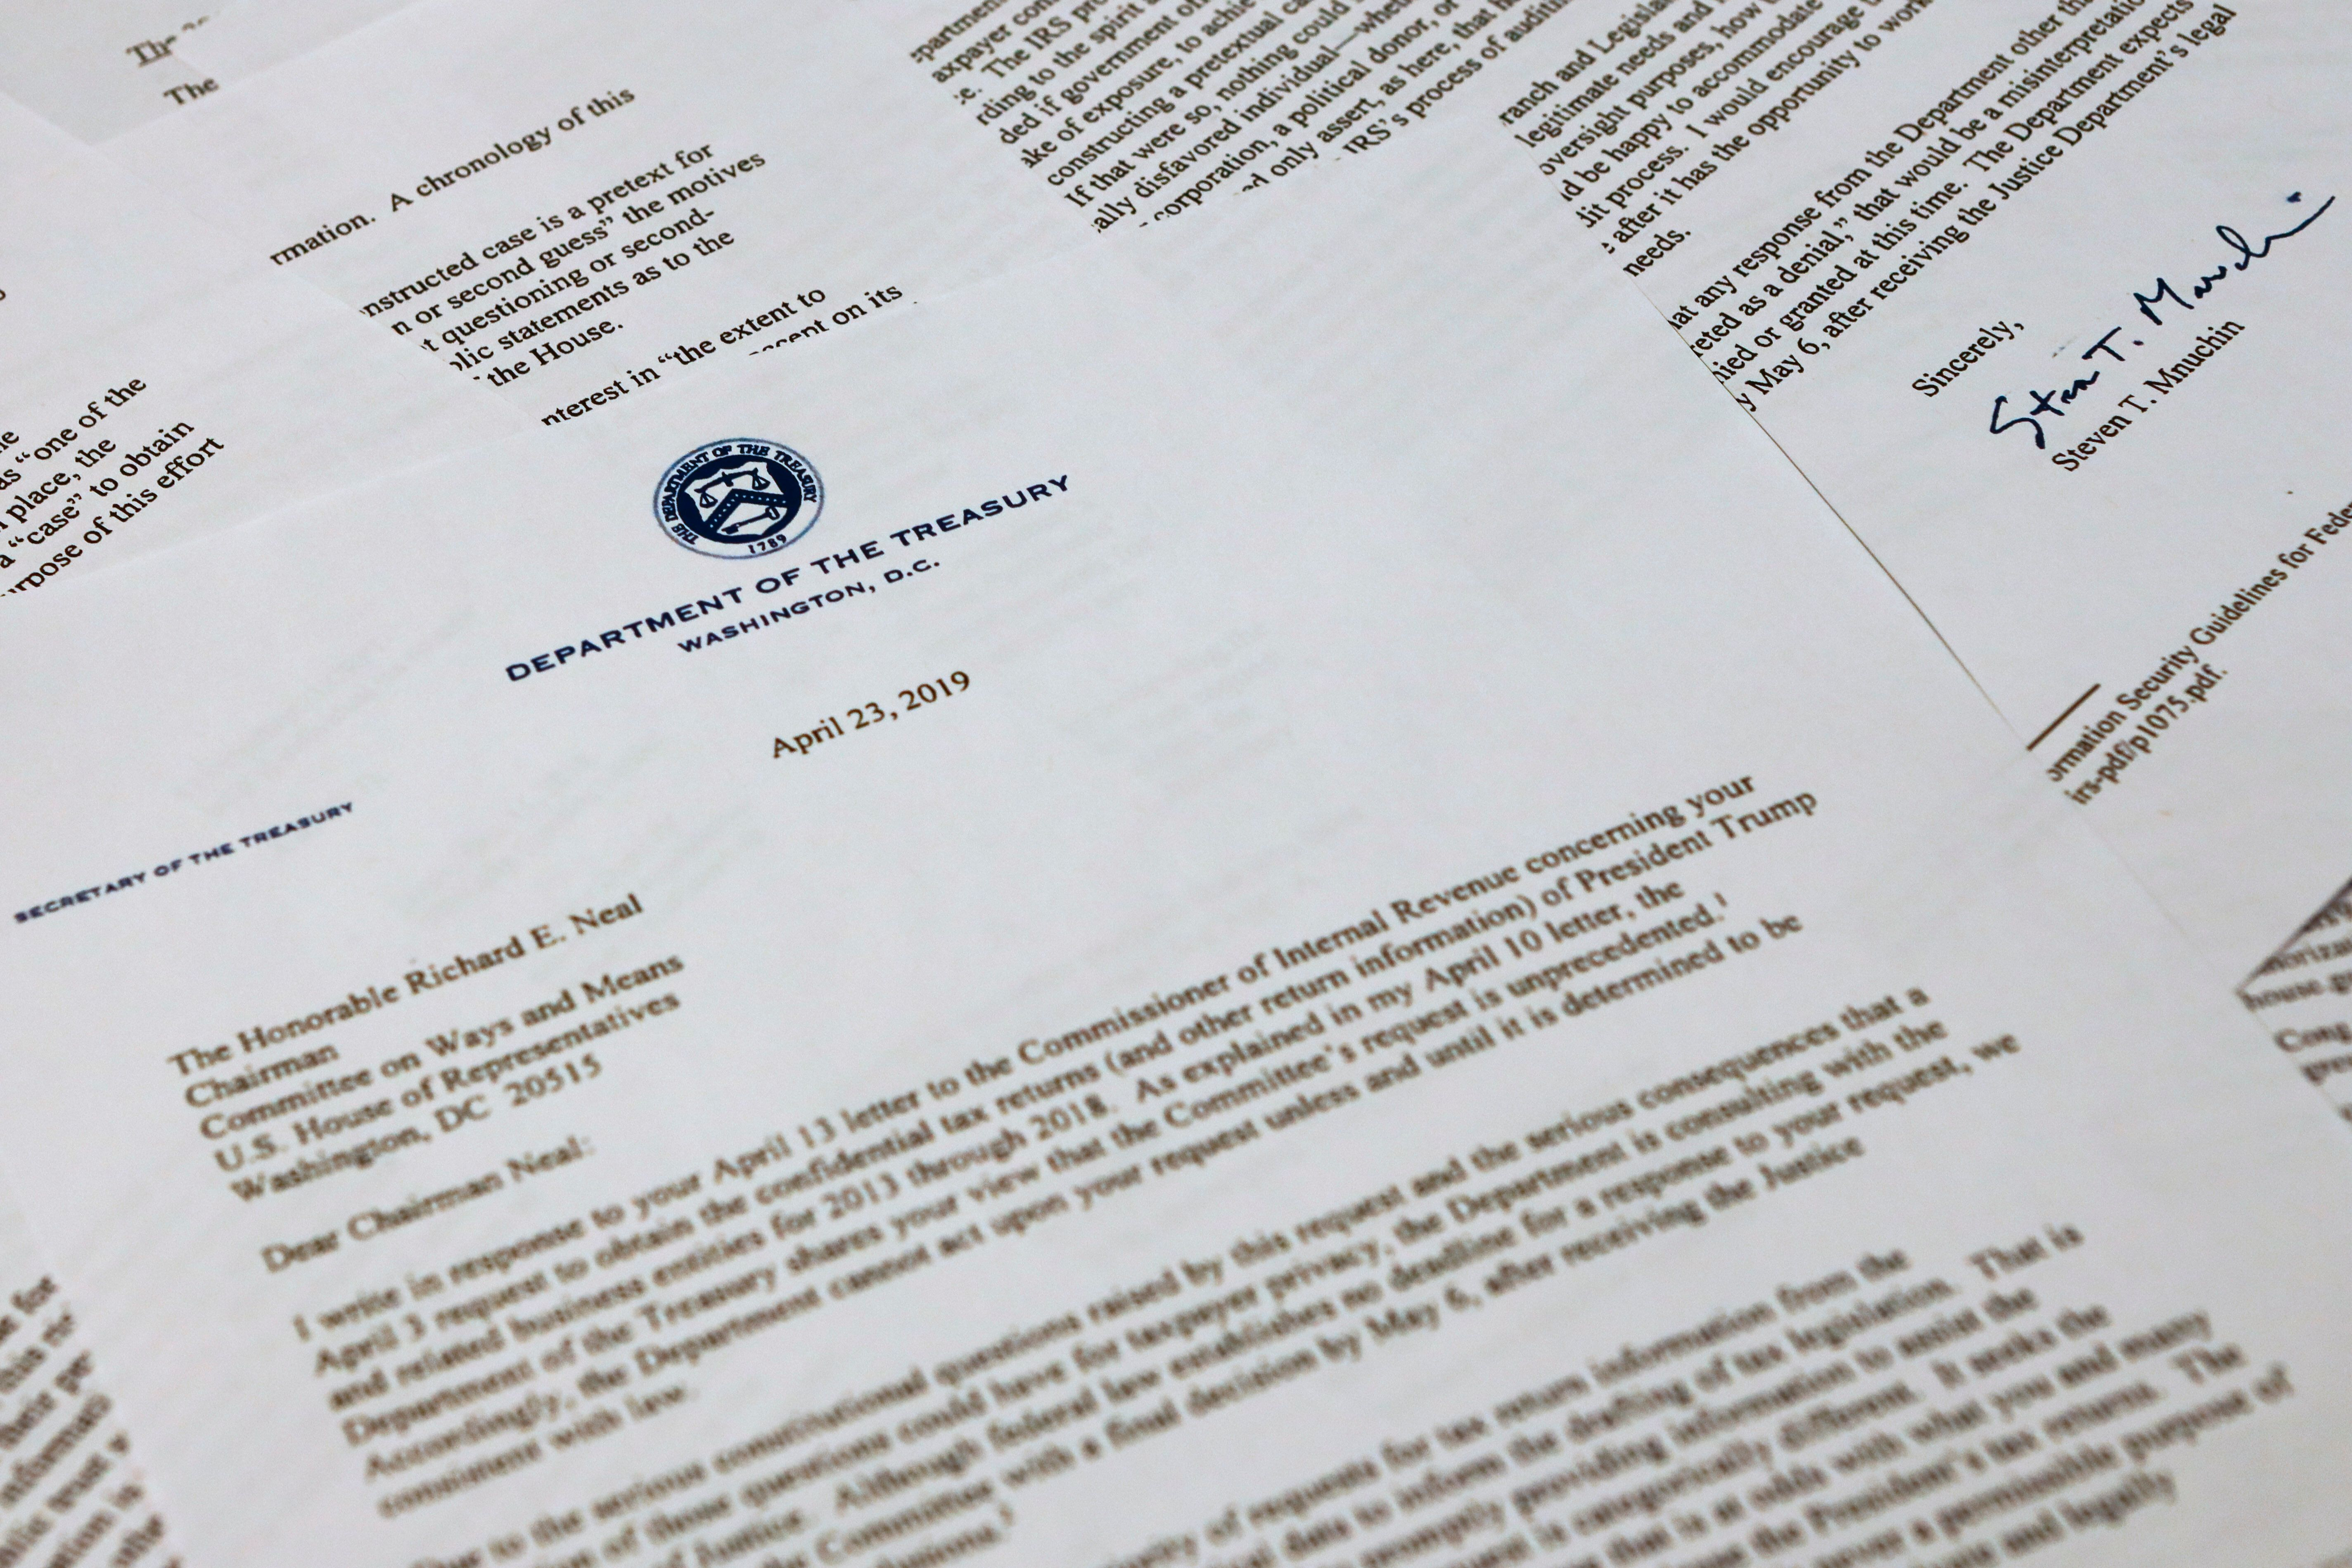 The letter from Treasury Secretary Steven Mnuchin to House Ways and Mean chairman Richard Neal of Mass., is photographed Tuesday, April 23, 2019, in Washington. Mnuchin is asking for more time to respond to House Democrats' request for President Donald Trump's tax returns.  (AP Photo/Jon Elswick)